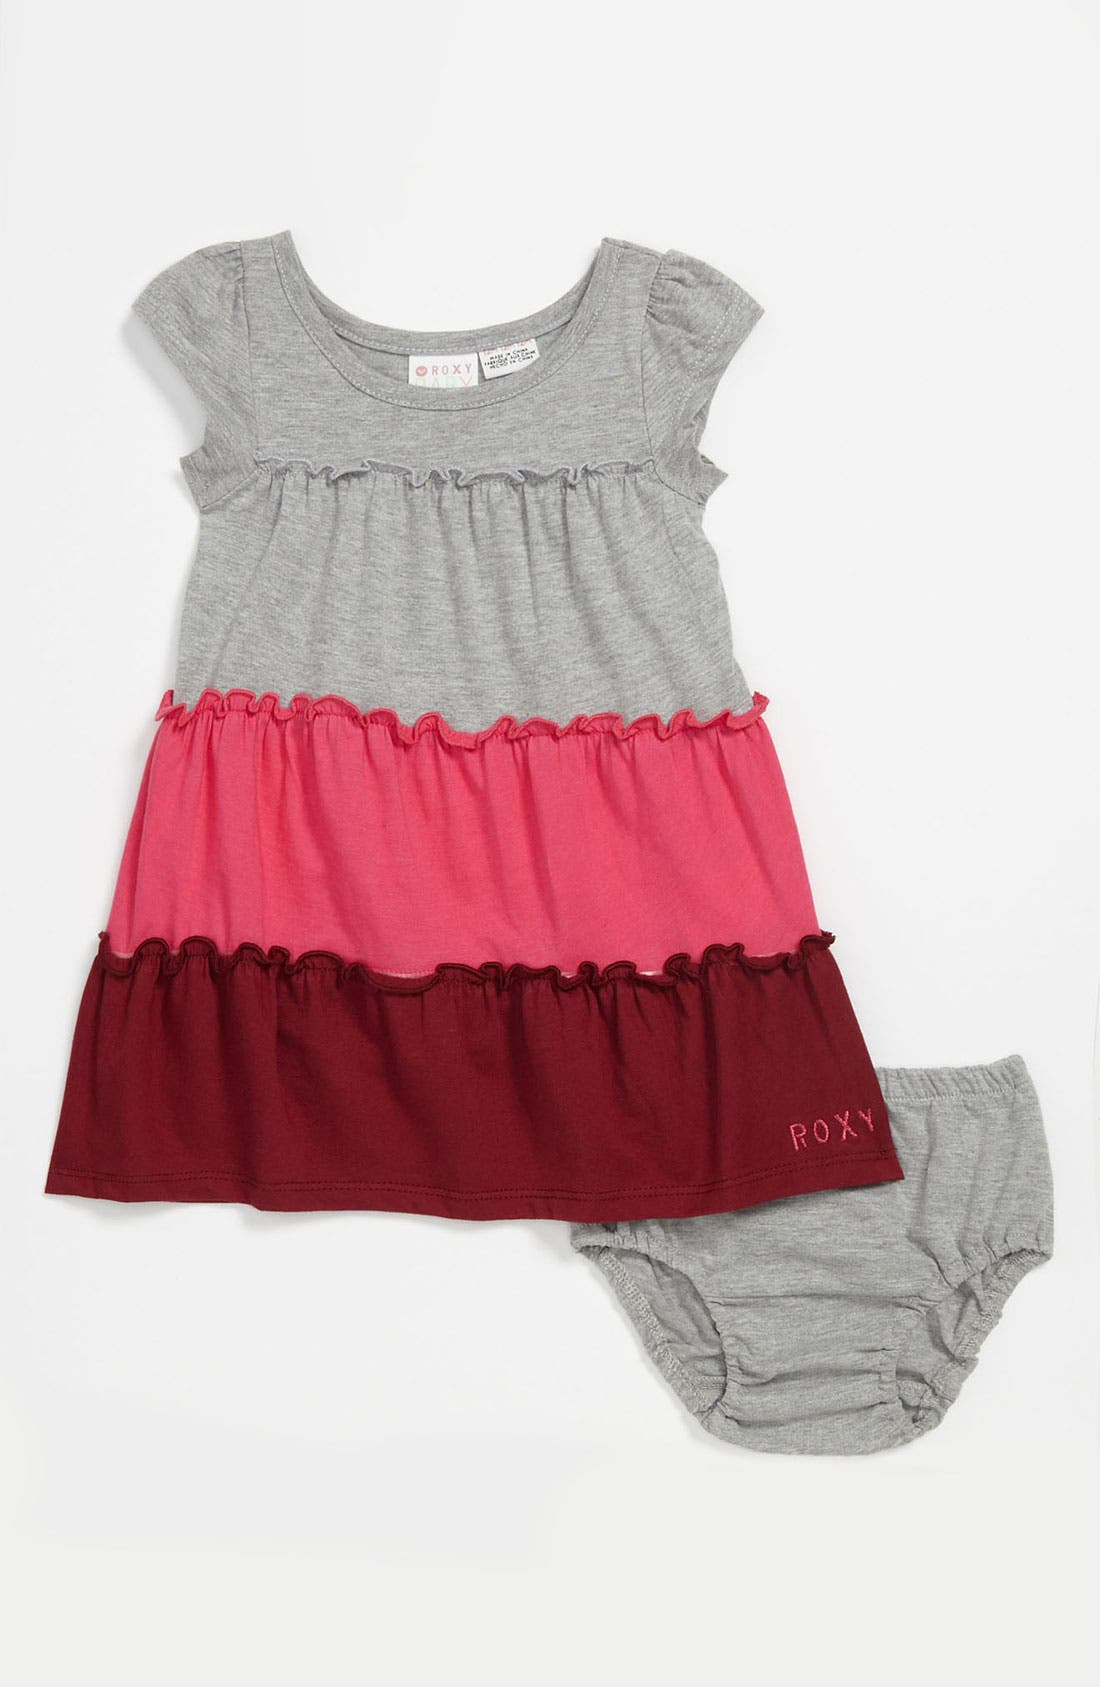 Main Image - 'Cider' Colorblock Dress (Infant)